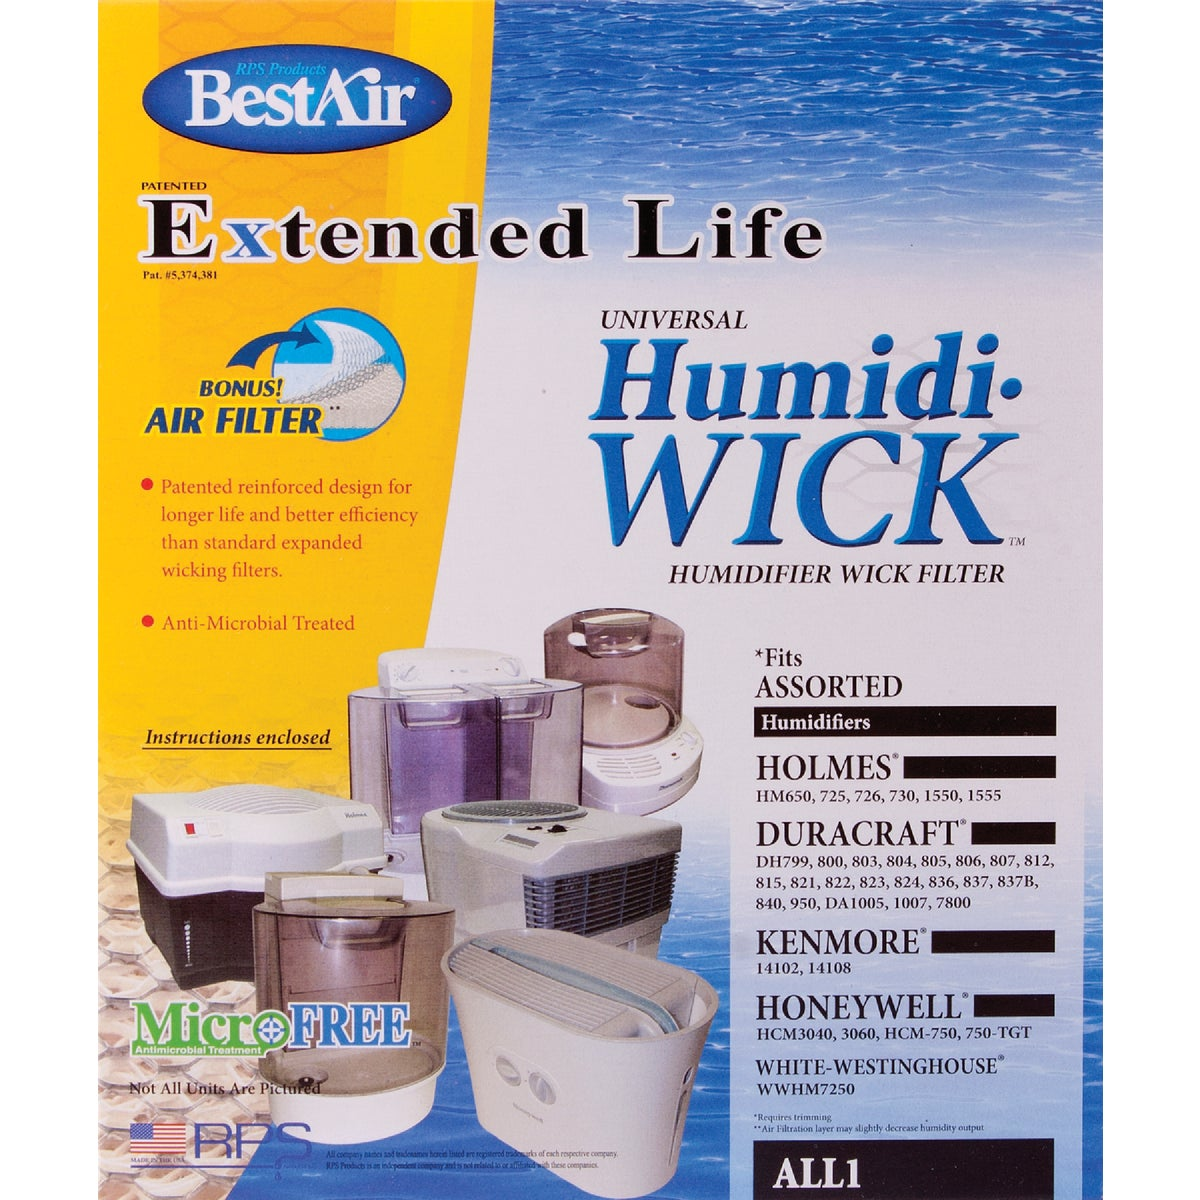 HUMIDIFIER WICK FILTER - ALL-1 by Rps Products Inc